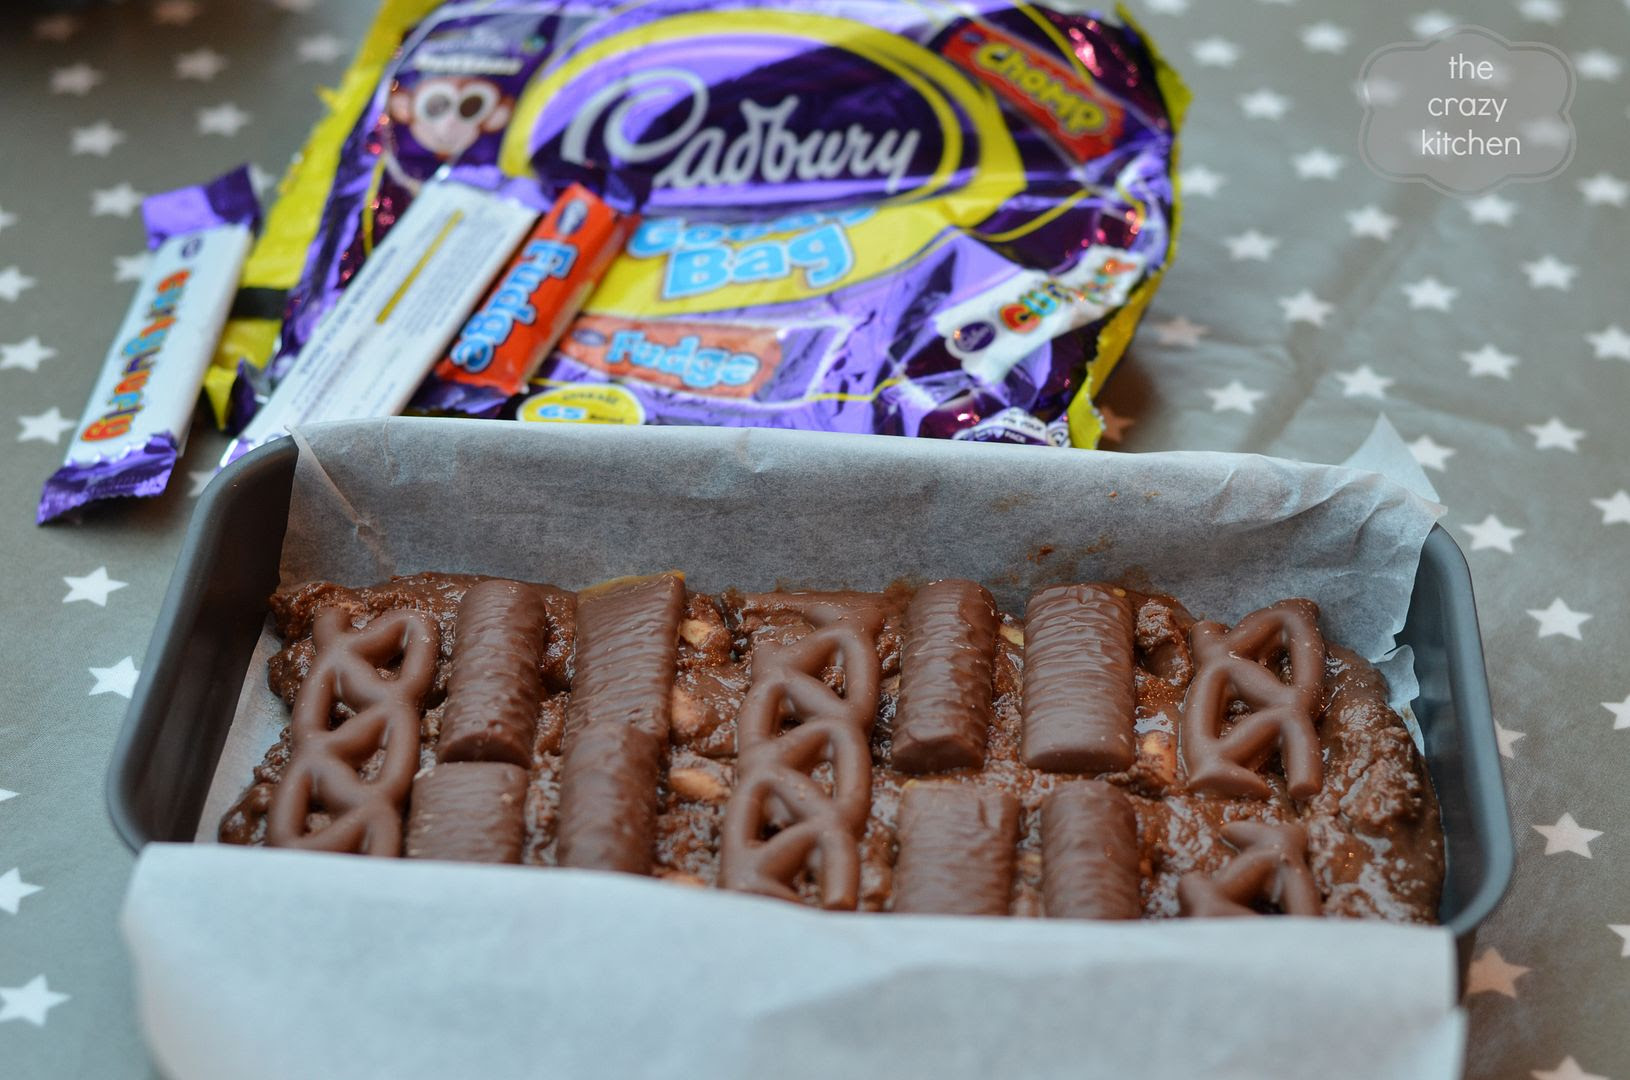 Fridge Cake with Cadbury Treatsize